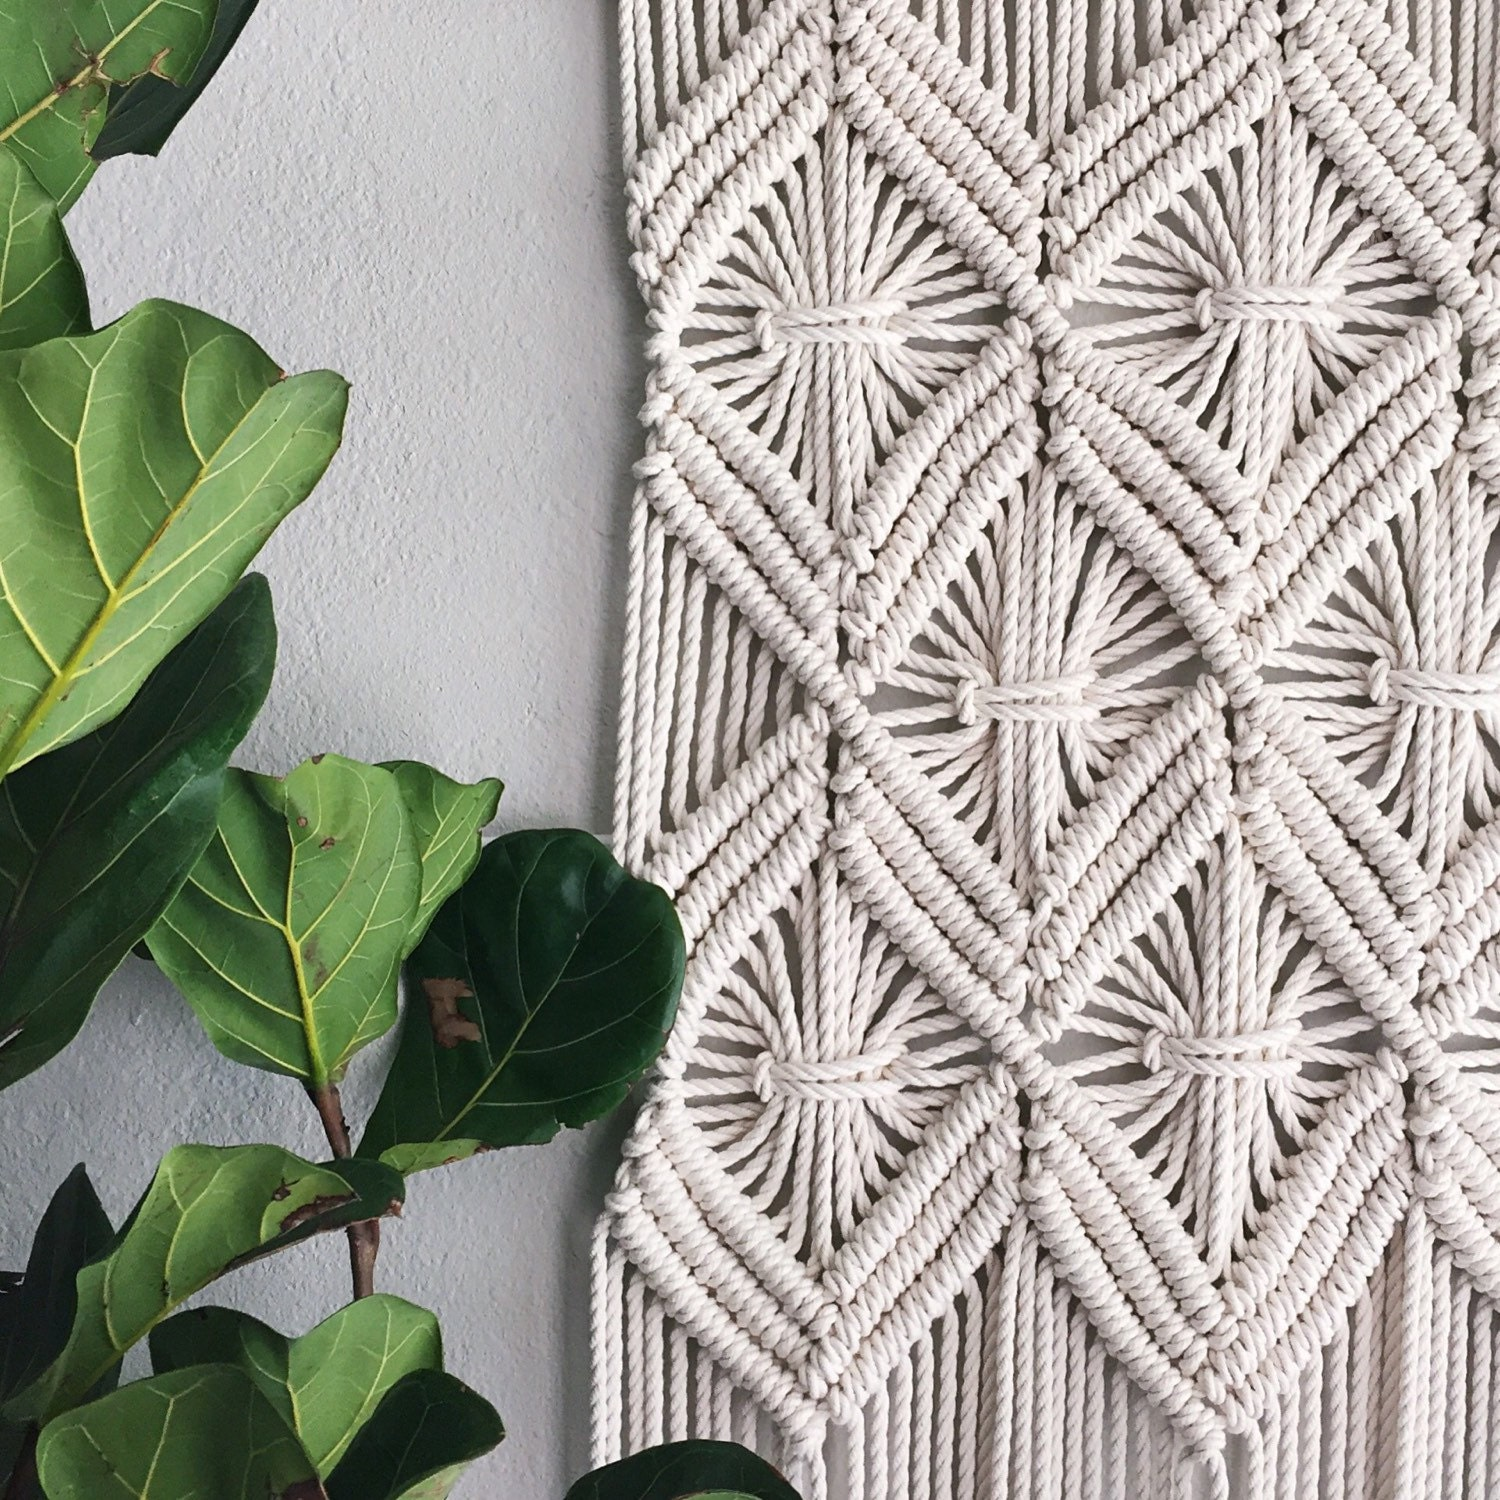 macrame wall hanging patterns free macrame patterns macrame pattern macrame wall hanging 3818